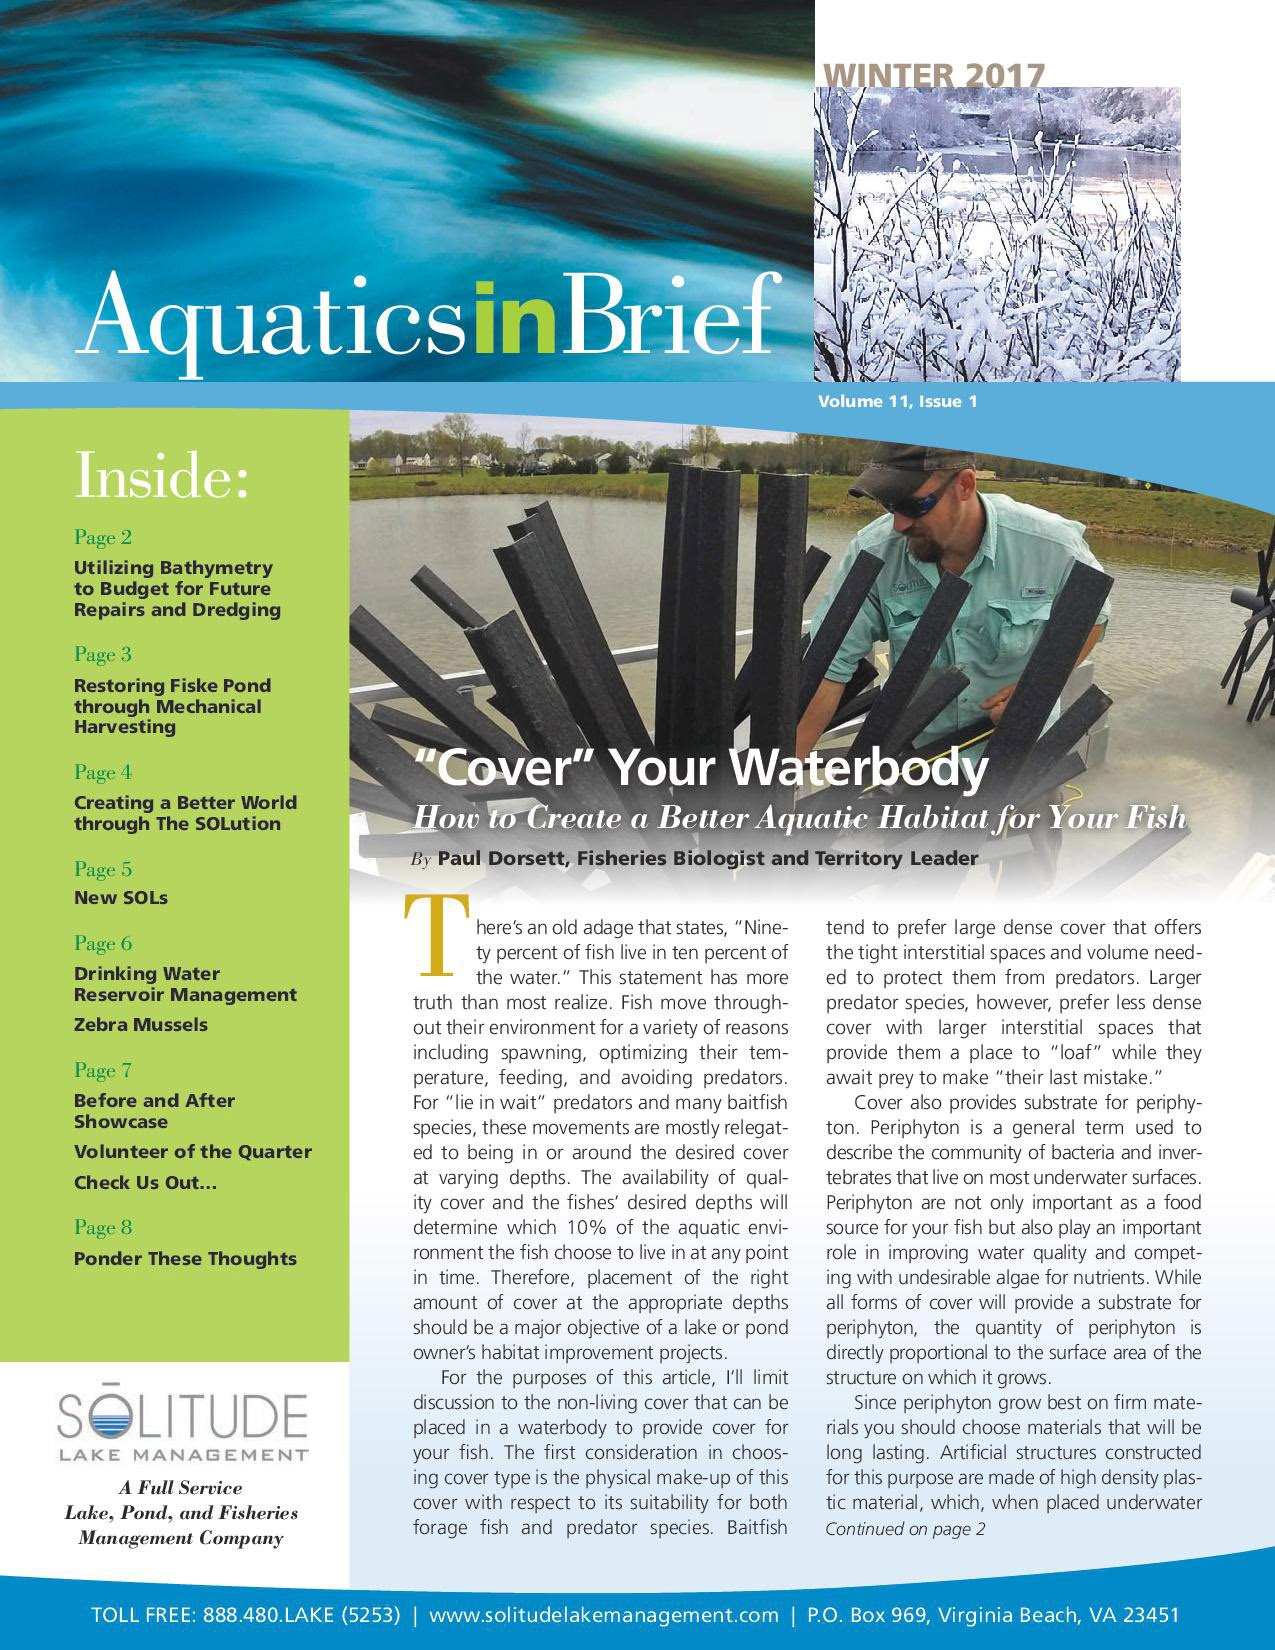 Aquatics-in-brief-winter-2017